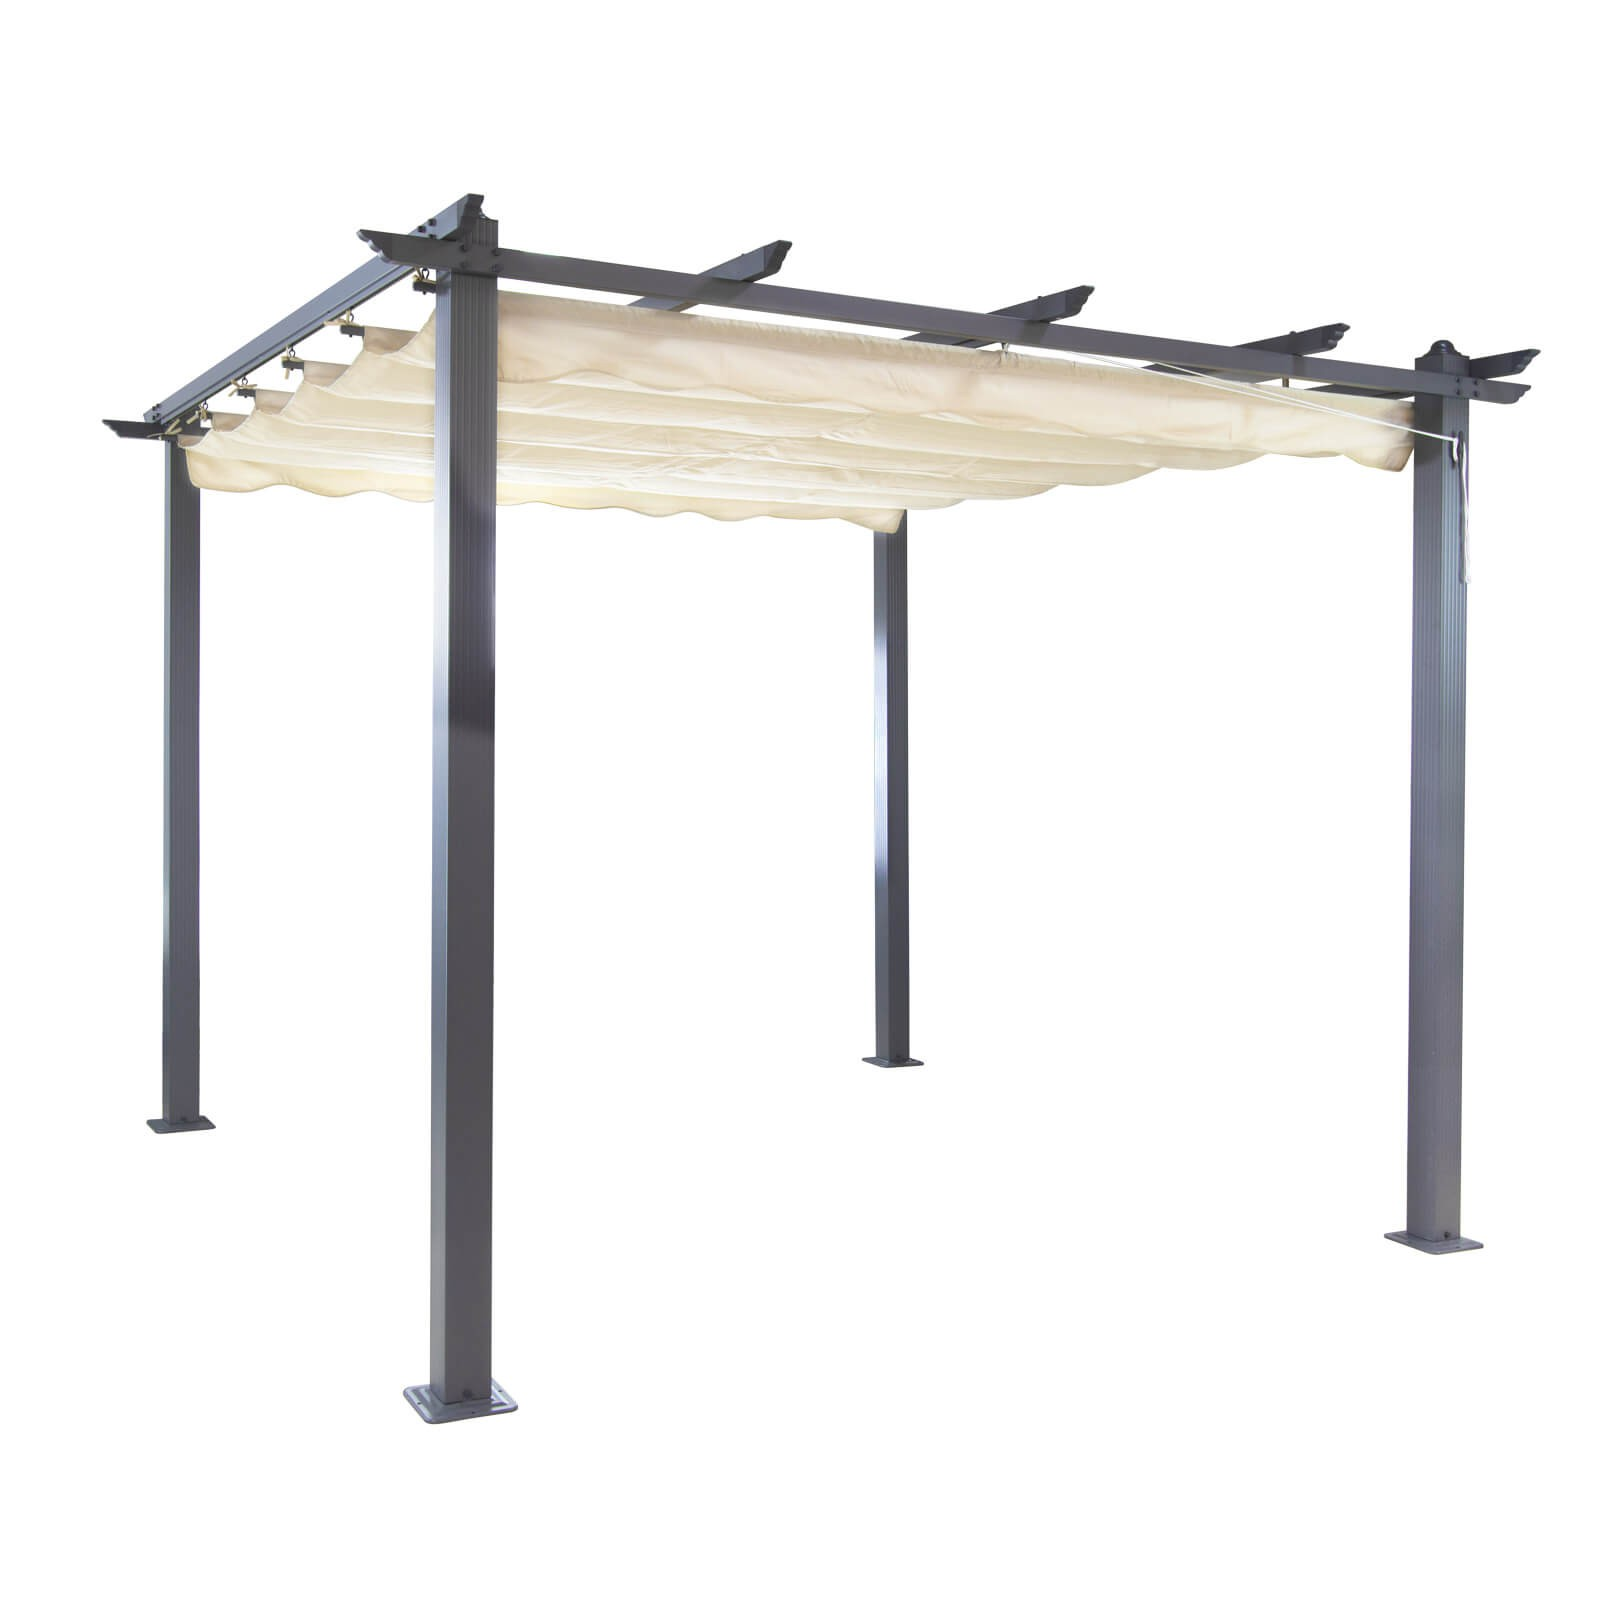 alu pergola sonnenschutz freiburg ecru 296x296cm. Black Bedroom Furniture Sets. Home Design Ideas